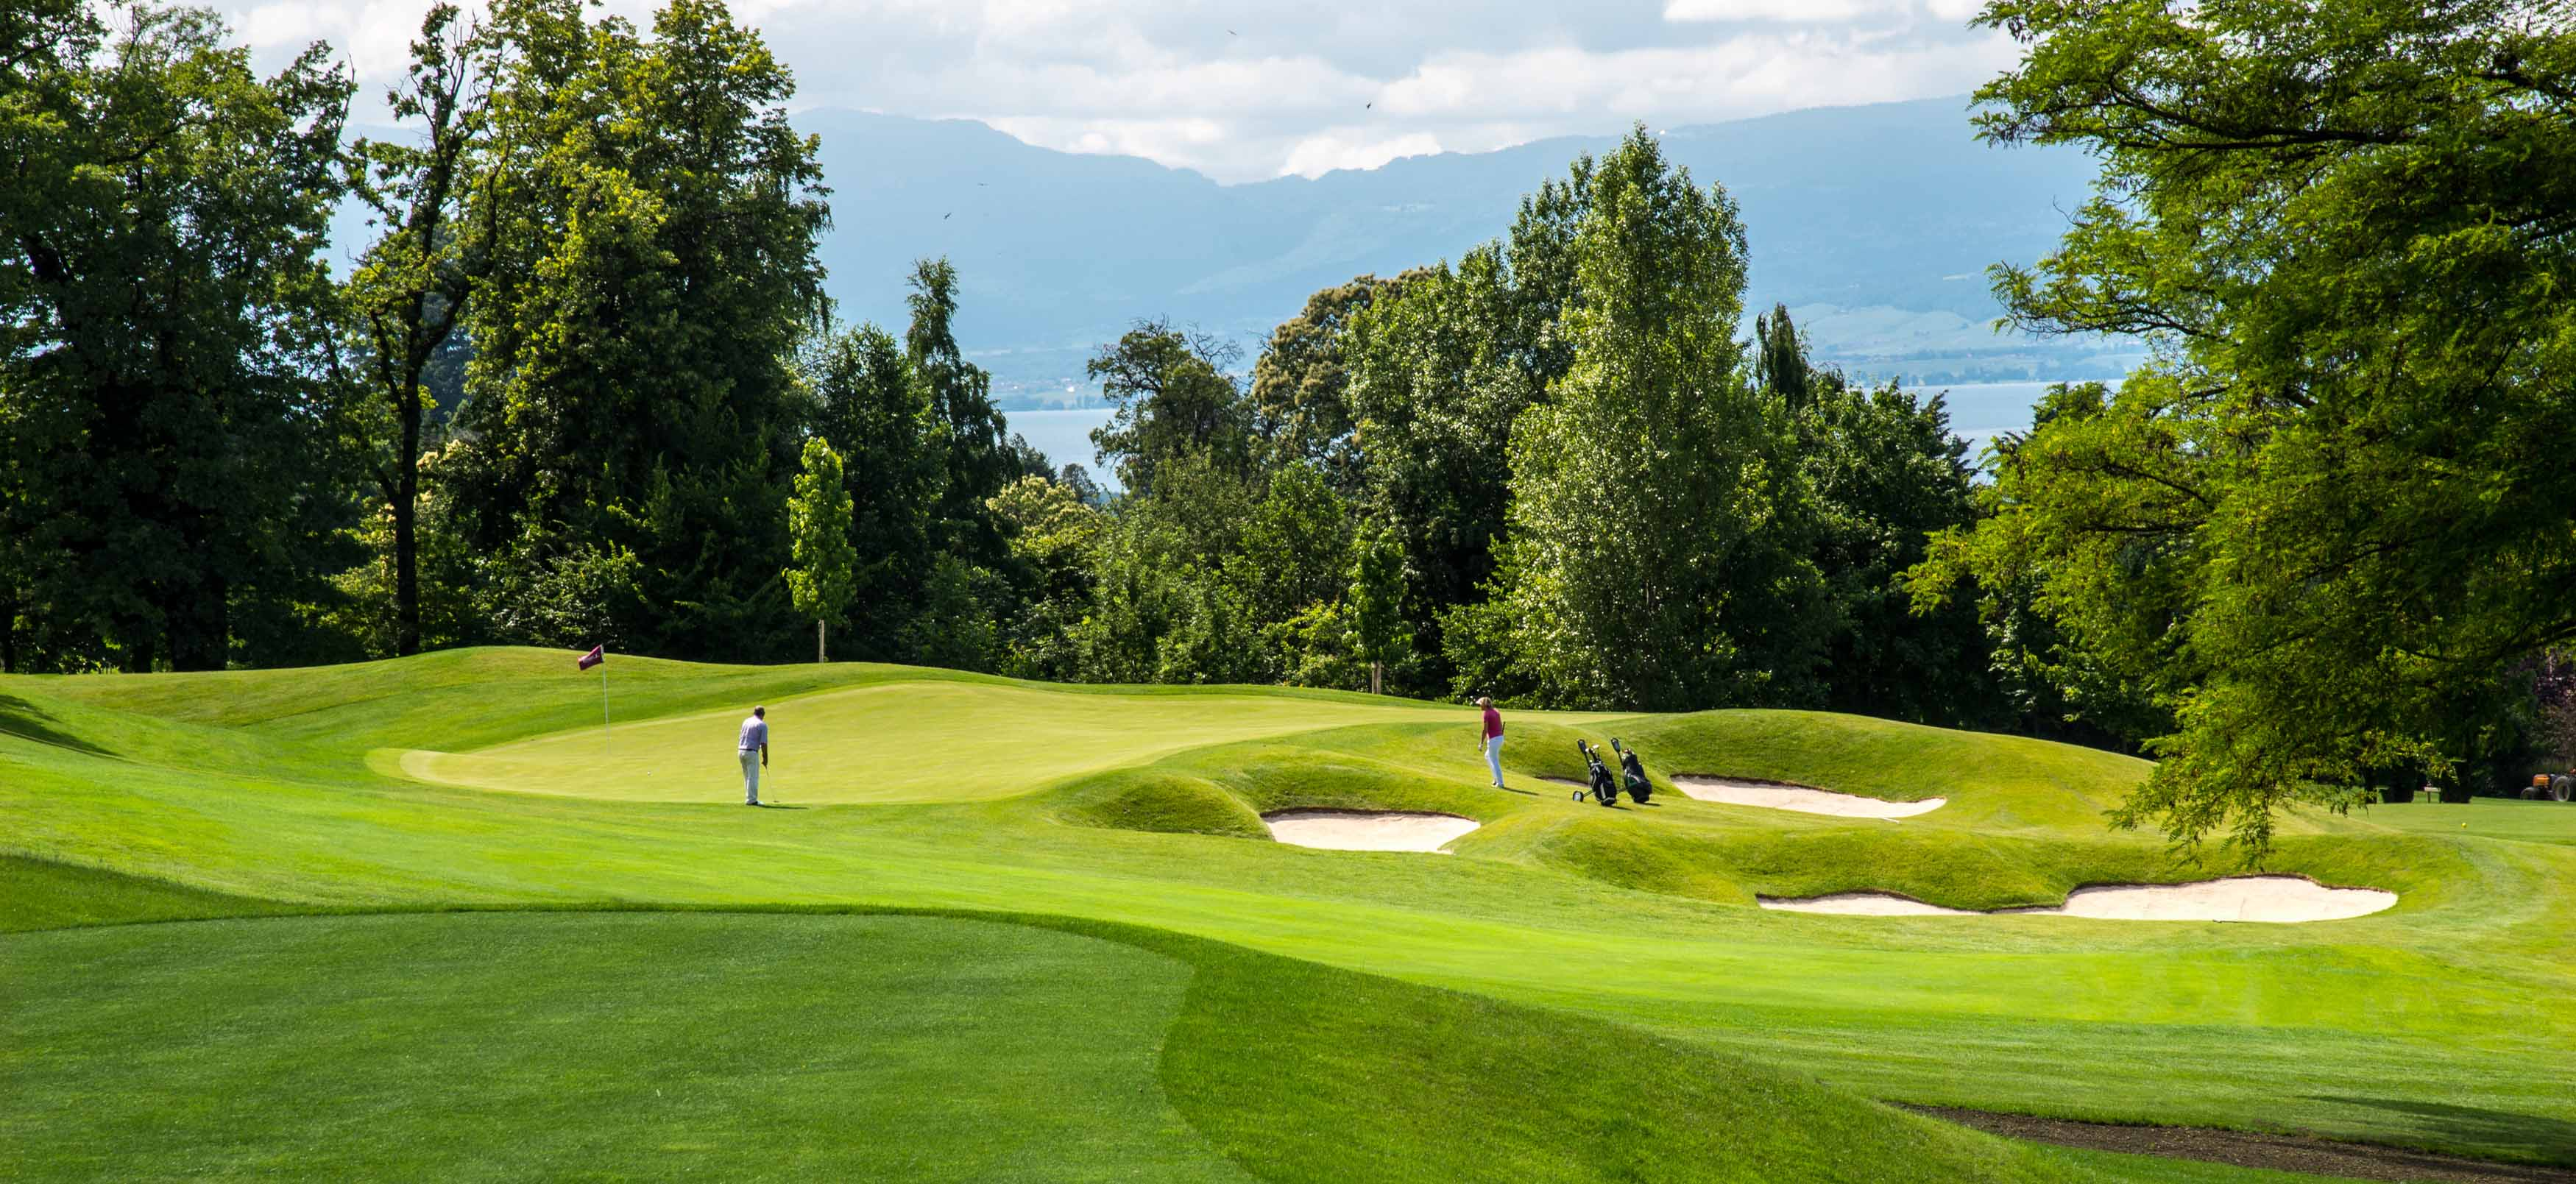 GOLF Course in EVIAN France Europe  Luxury Resort